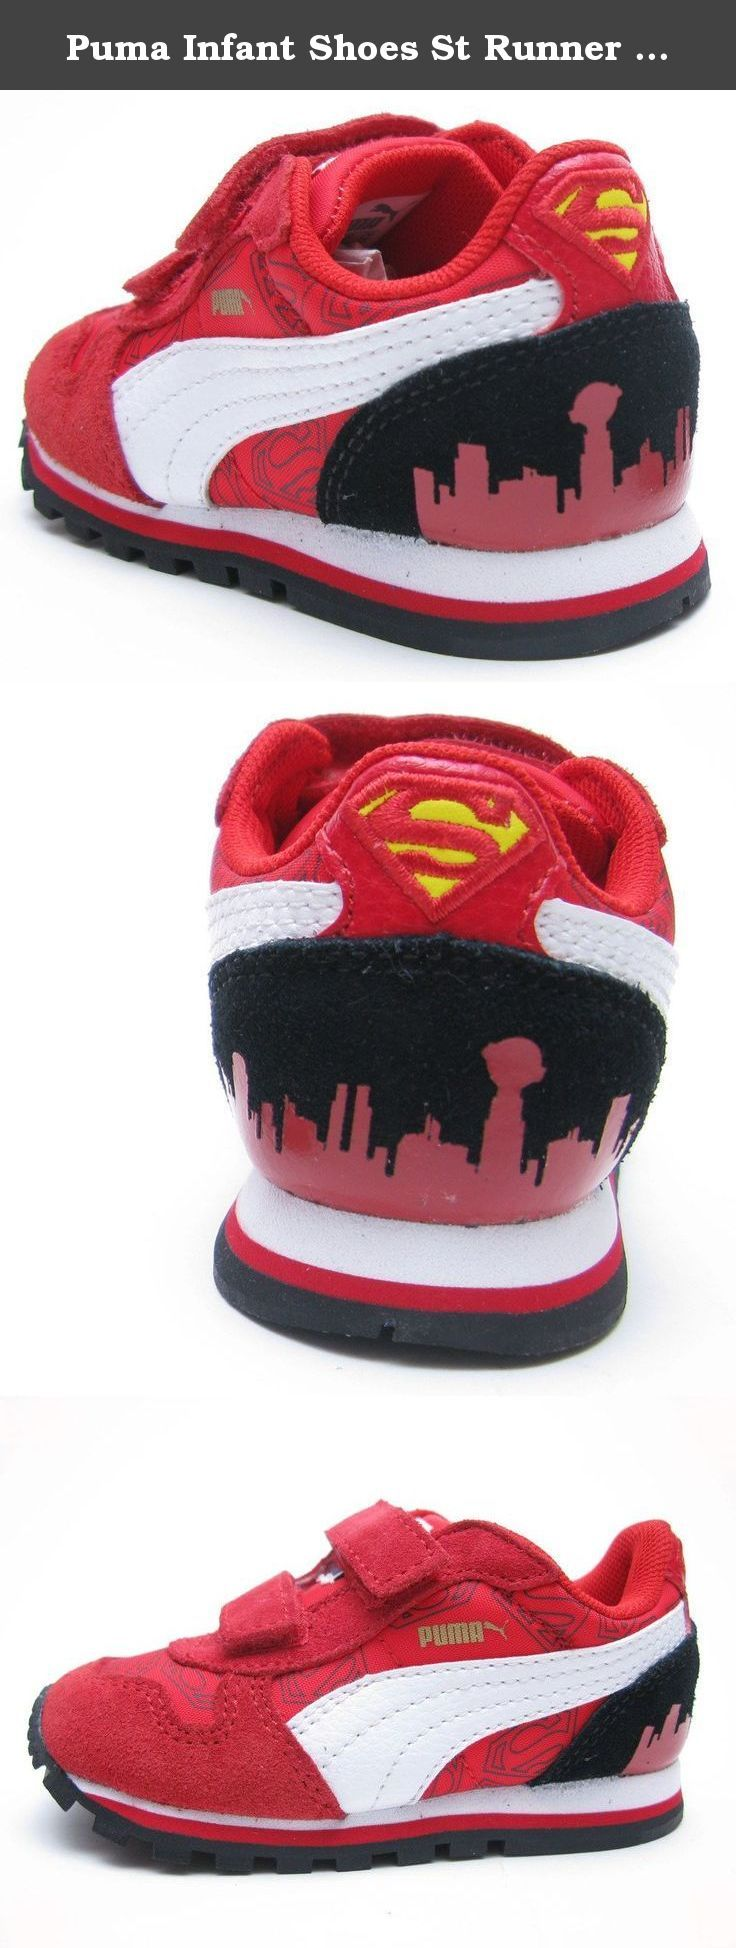 Puma Infant Shoes St Runner Superman Hero Red Fashion (4). ST Runner Superman Toddler Kids in High Risk Red/Rio Red by Puma.